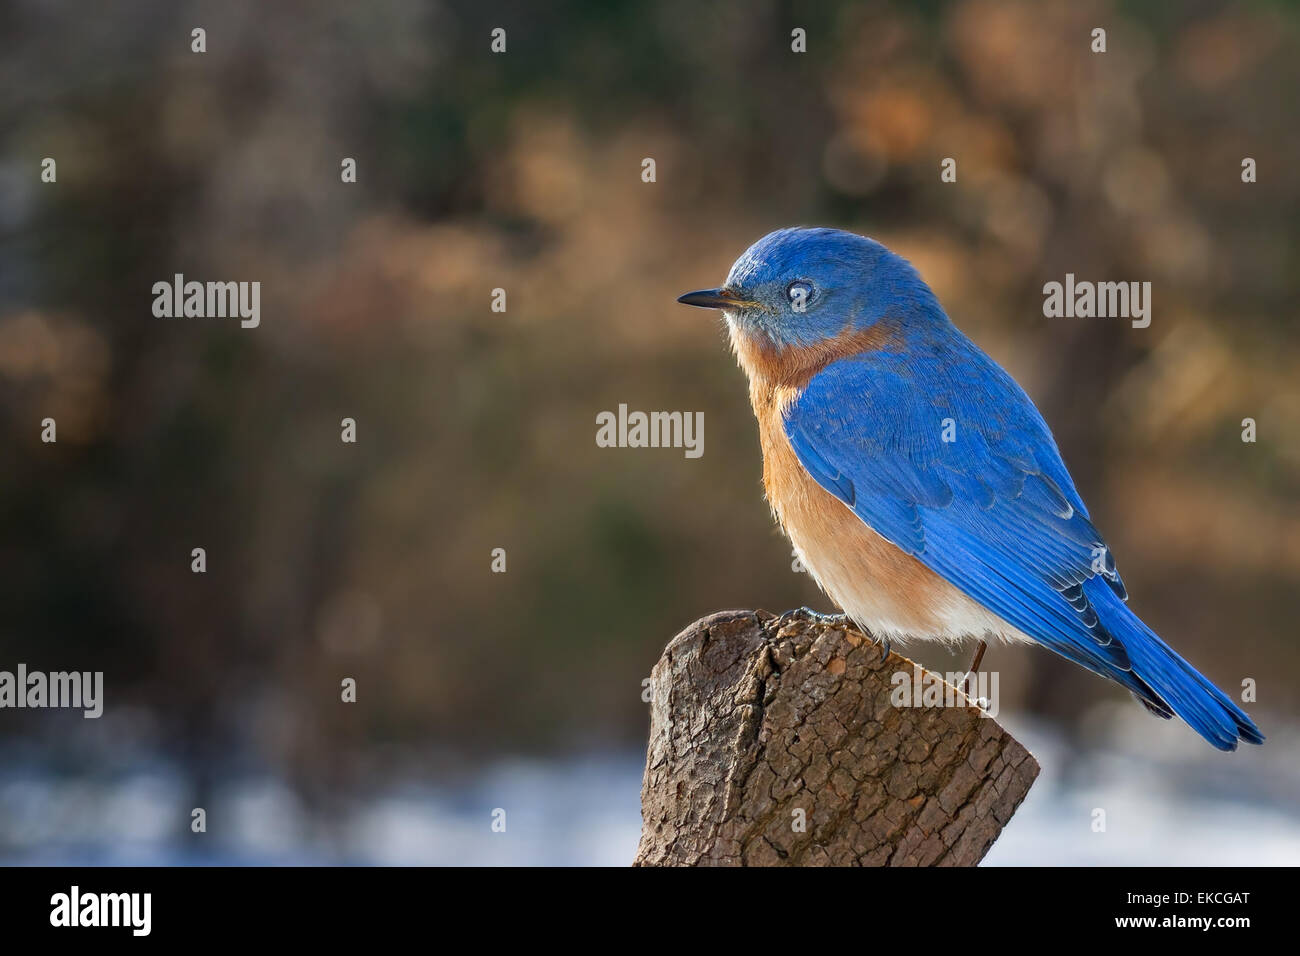 An eastern bluebird perched on a pine stump during the winter. - Stock Image